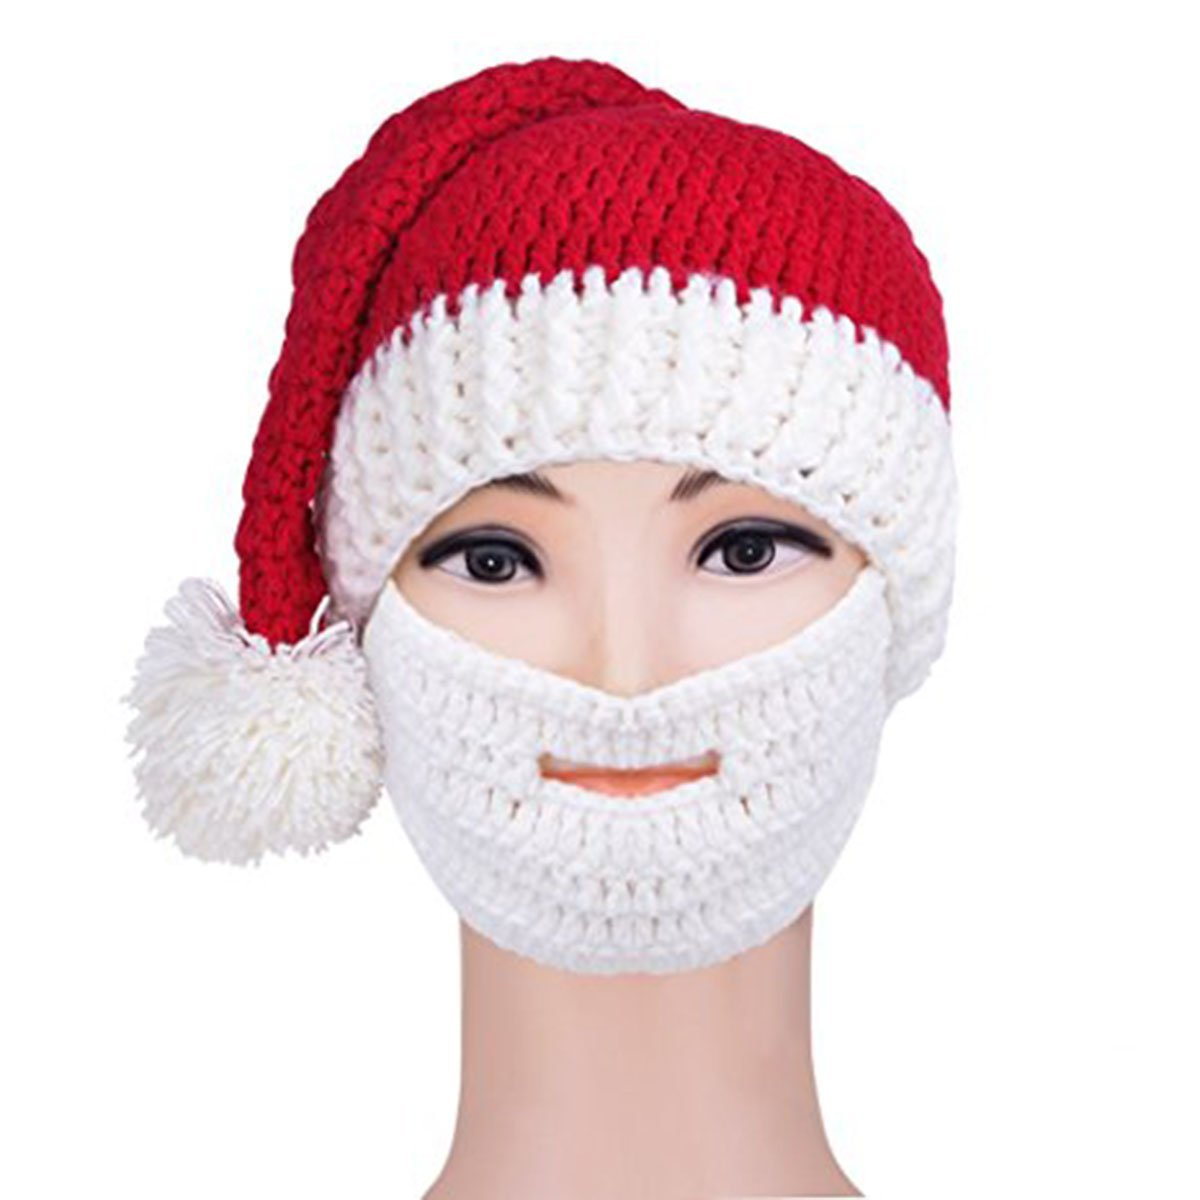 51955d0eb19 Get Quotations · Pakala66 Santa Beard Hat- Knitted Winter Hat with Beard  Christmas Santa Beanie for Men